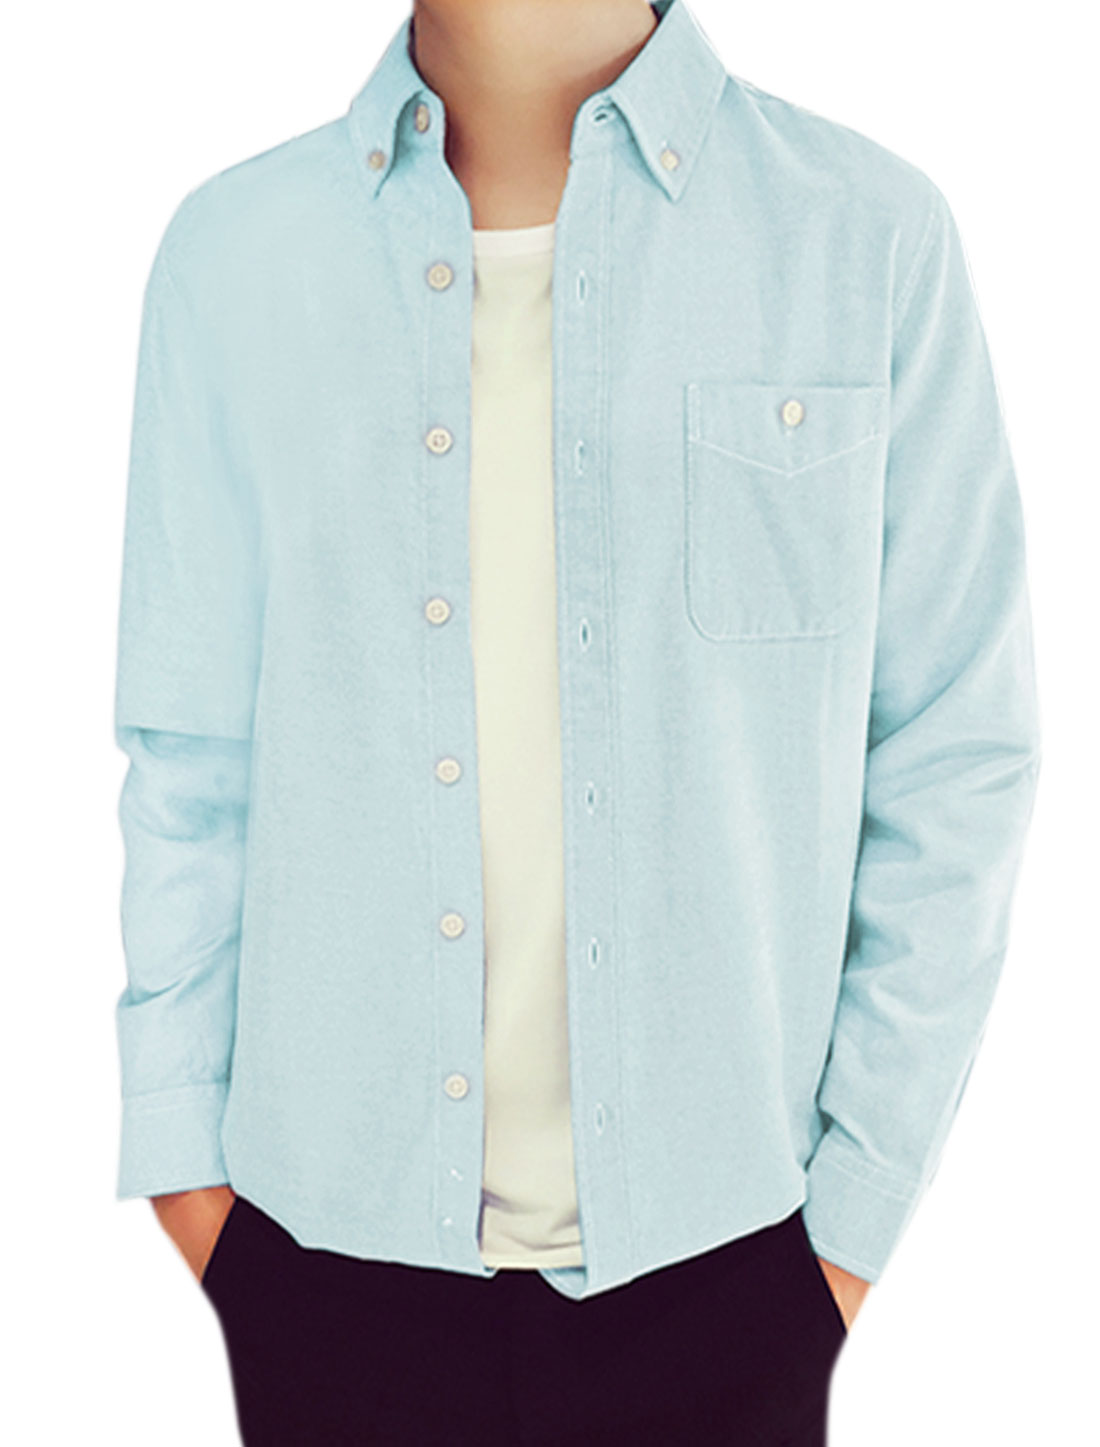 Man Long Sleeves Chest Pocket Button Down Casual Shirt Light Blue M